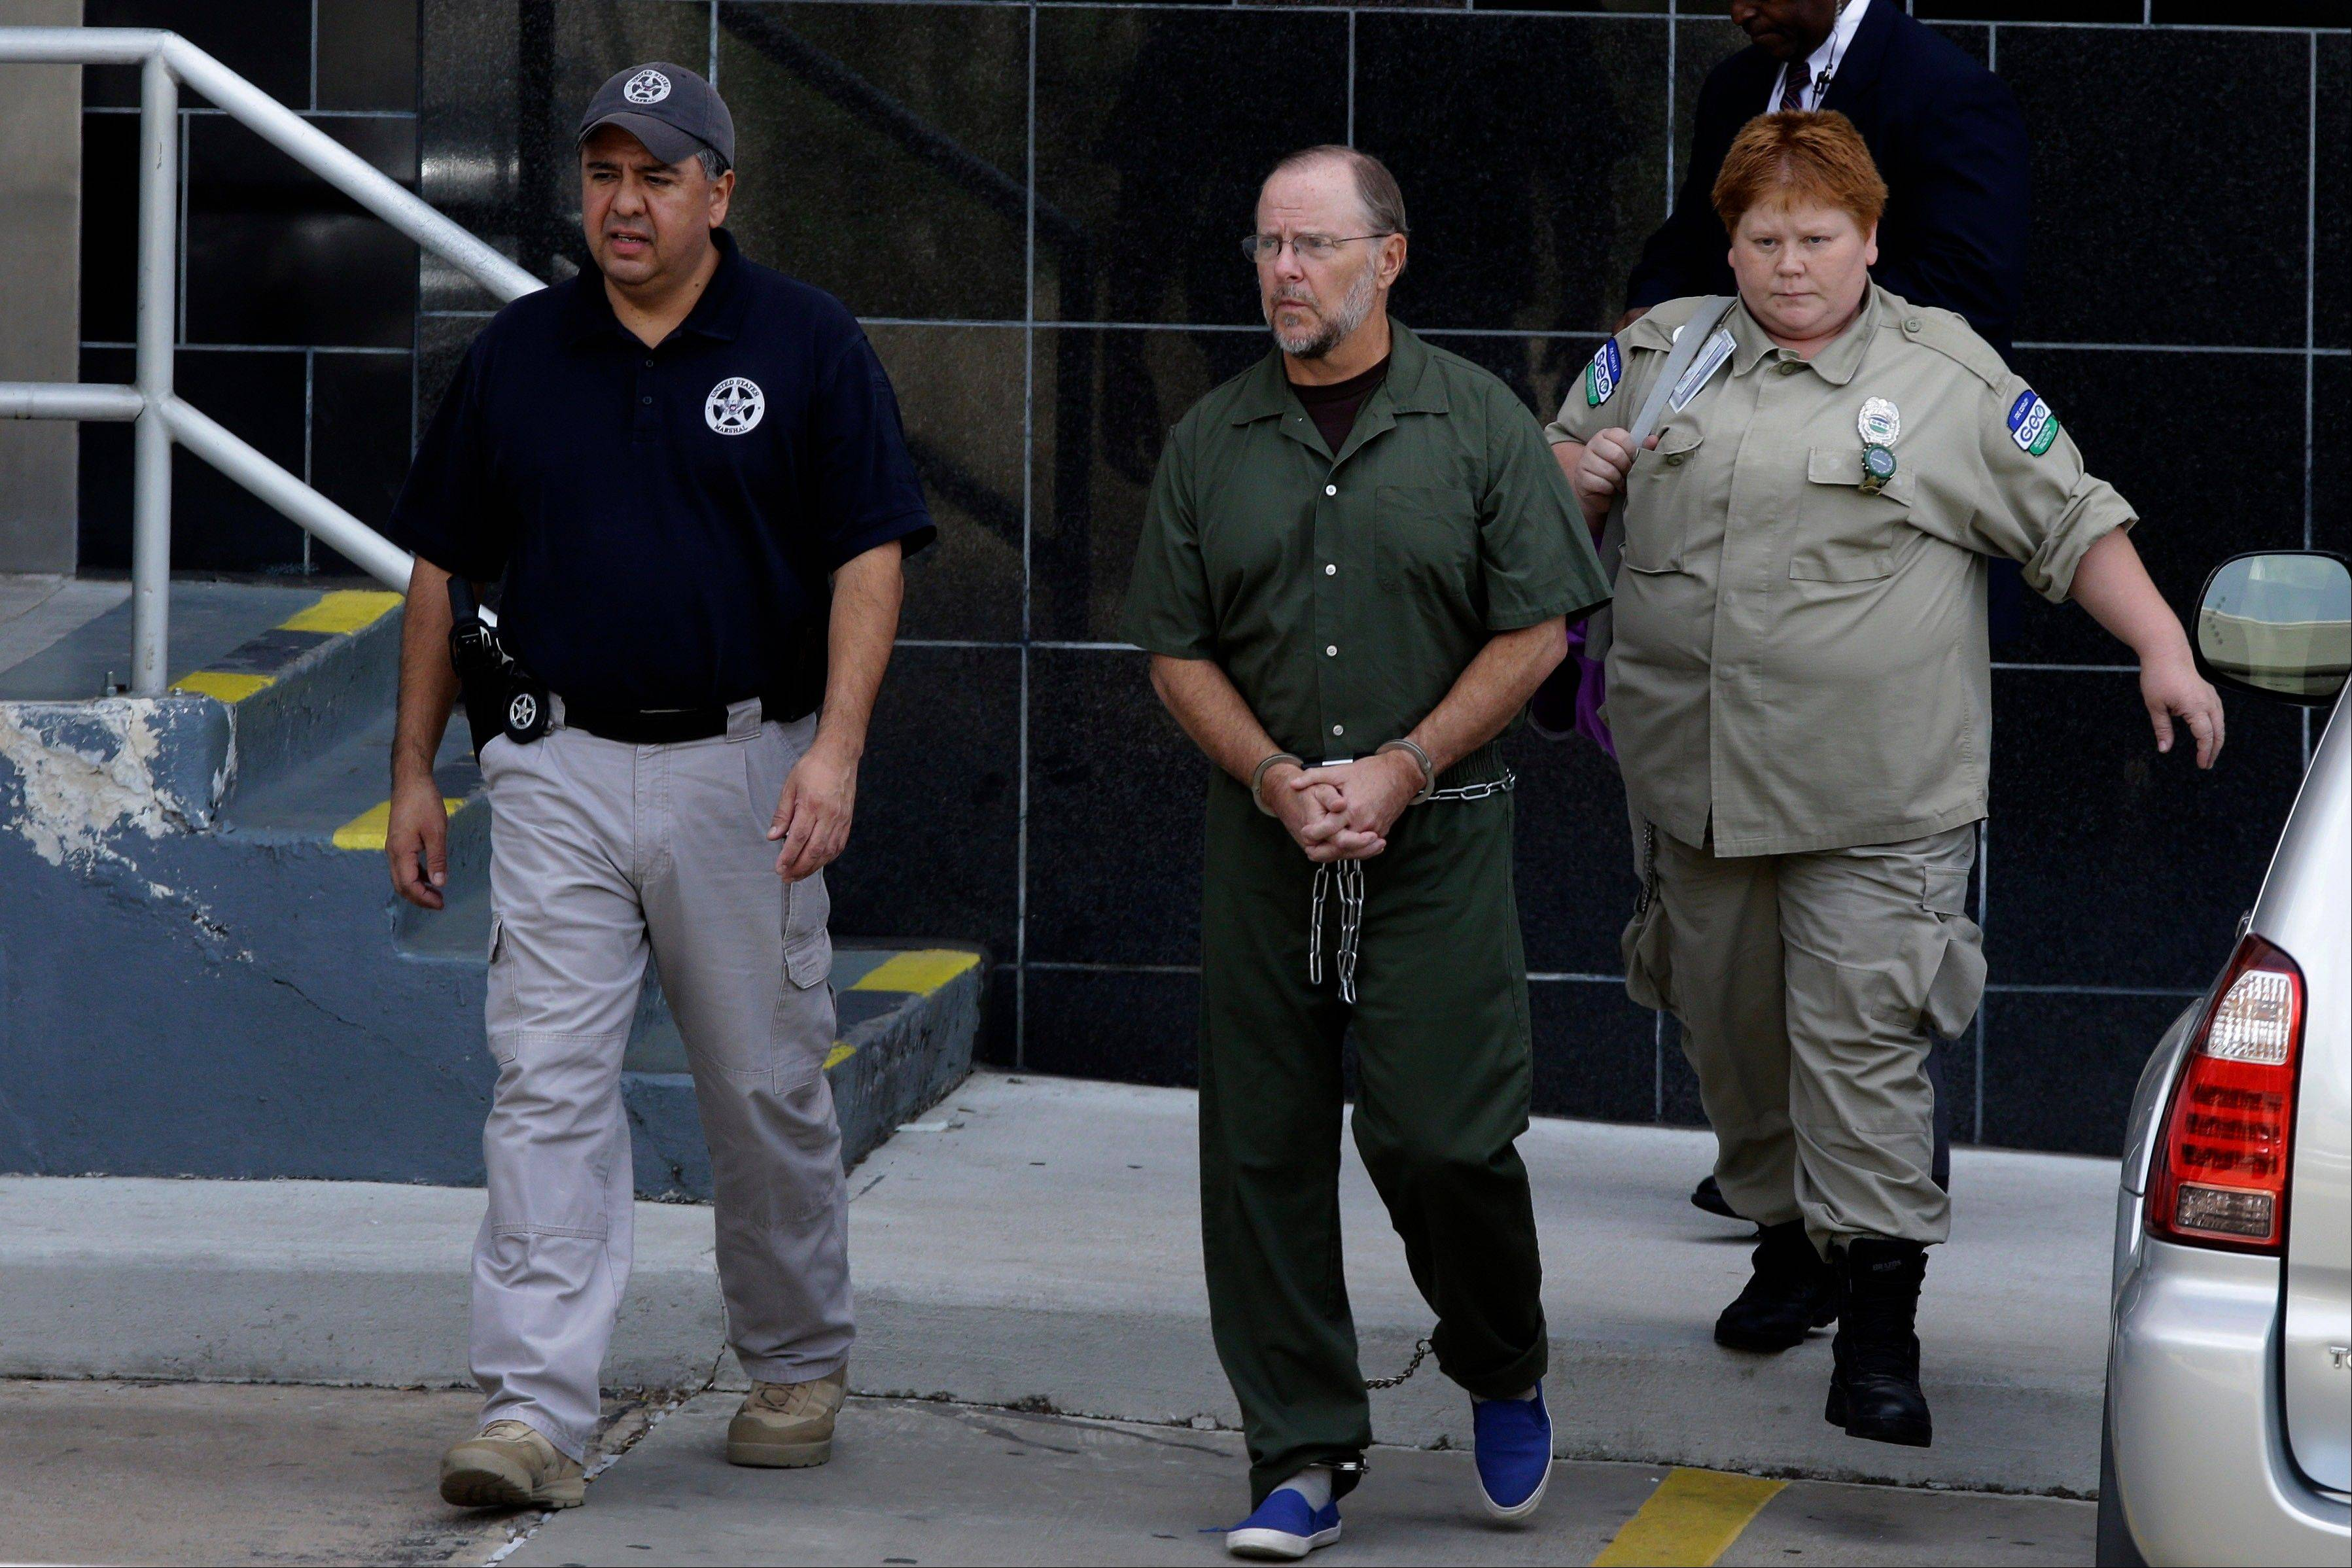 Former Enron CEO Jeffrey Skilling is escorted Friday from the federal courthouse in Houston after being re-sentenced for his role in the energy giant's collapse.